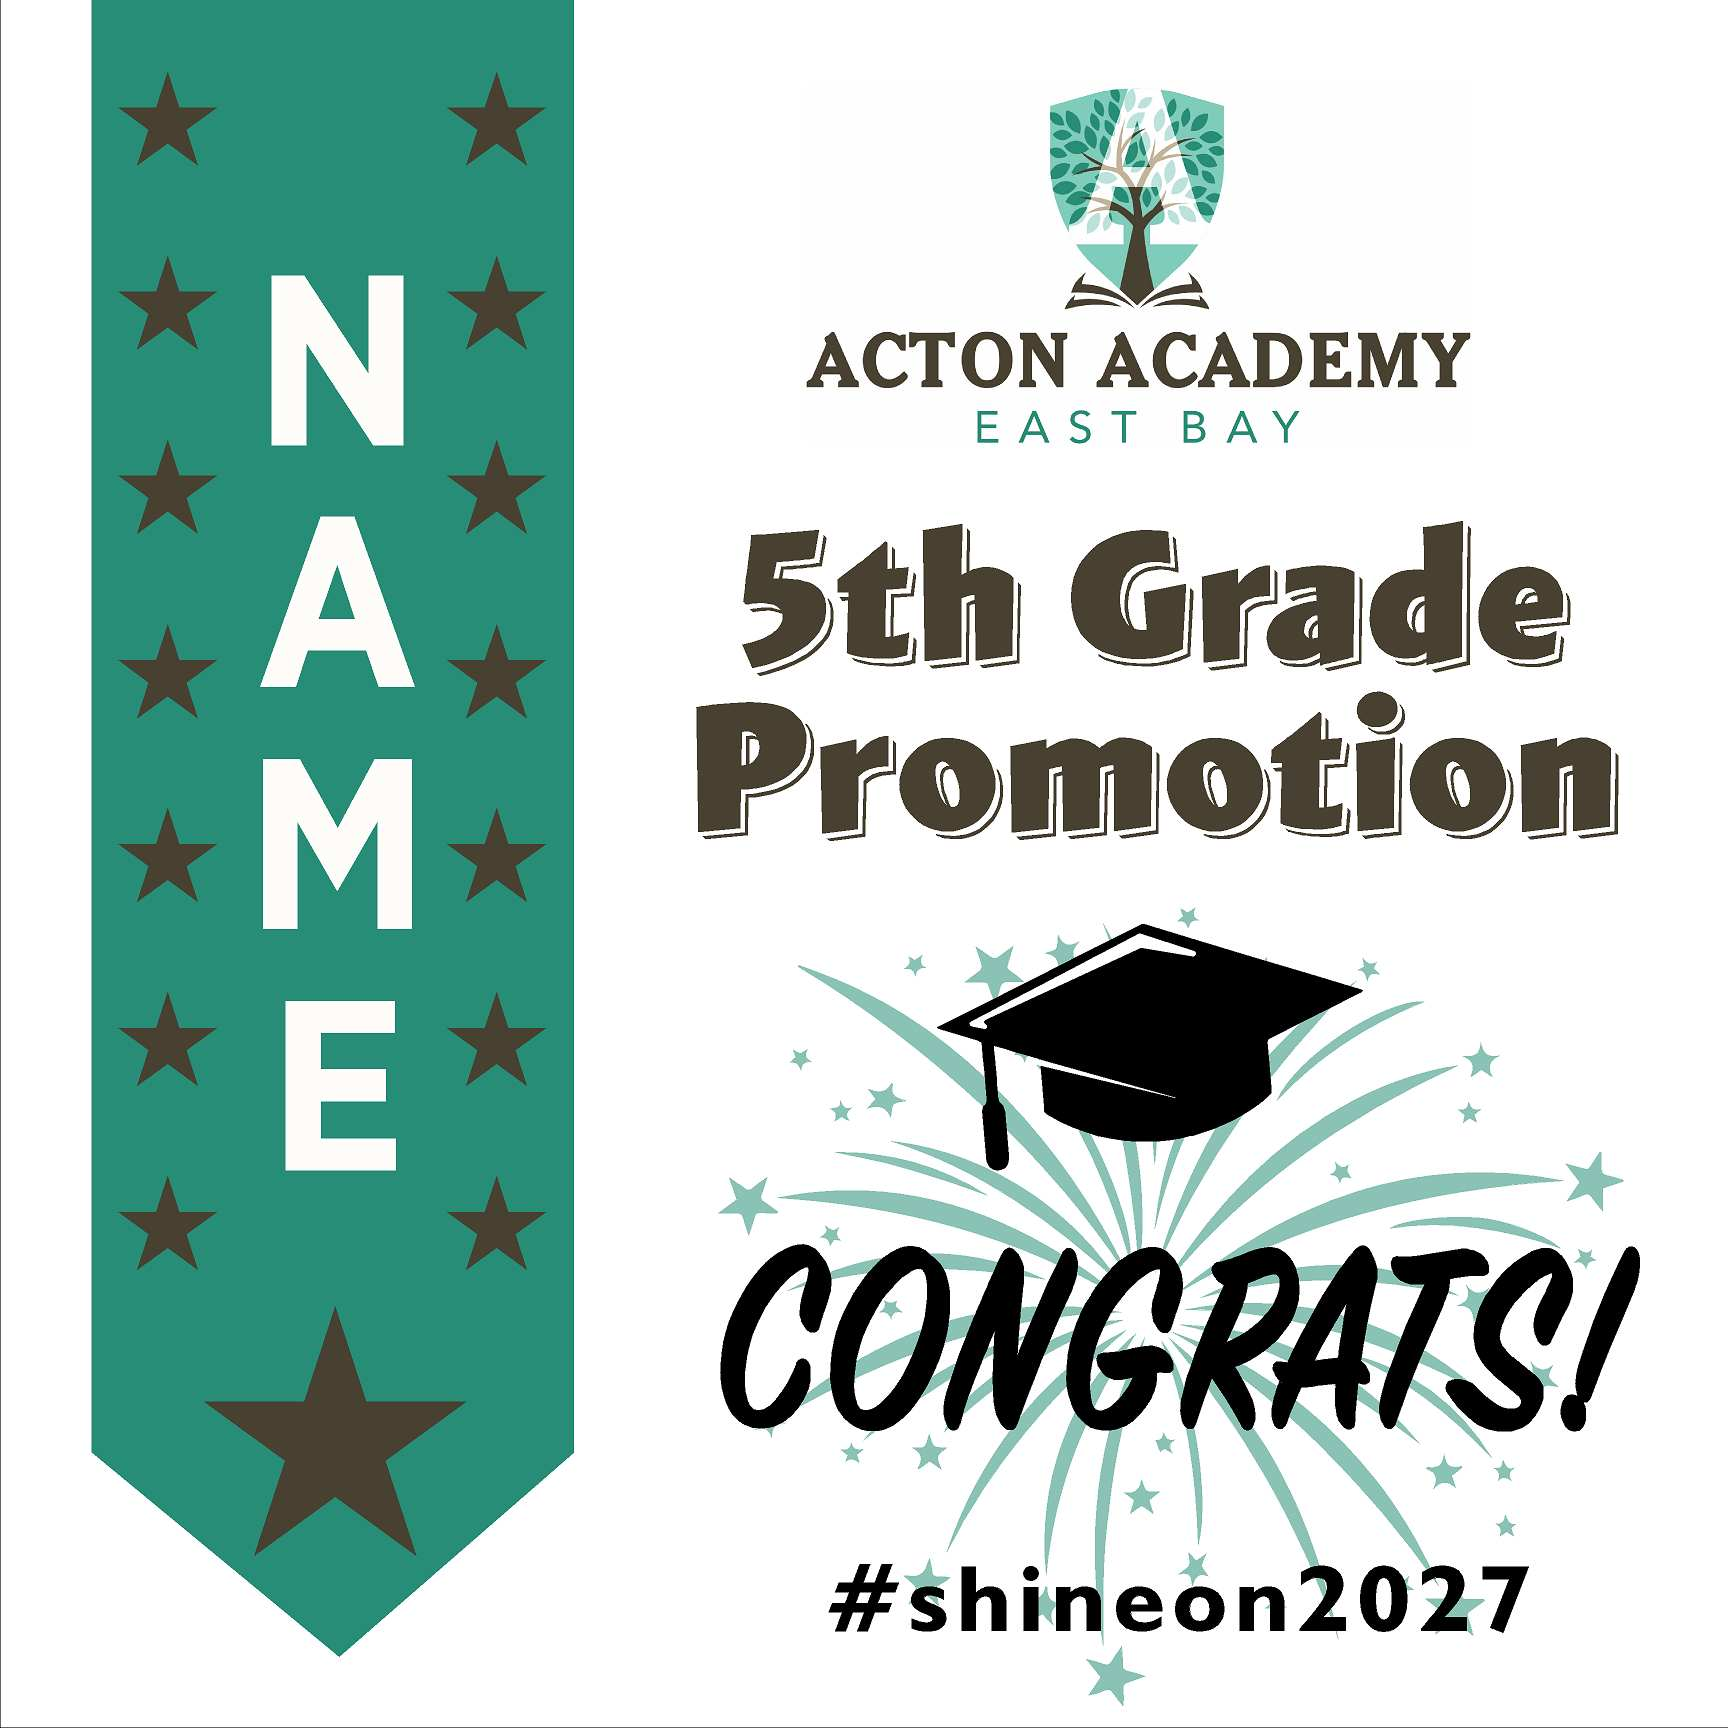 Acton Academy East Bay 5th Grade Promotion 24x24 #shineon2027 Yard Sign (Option B)